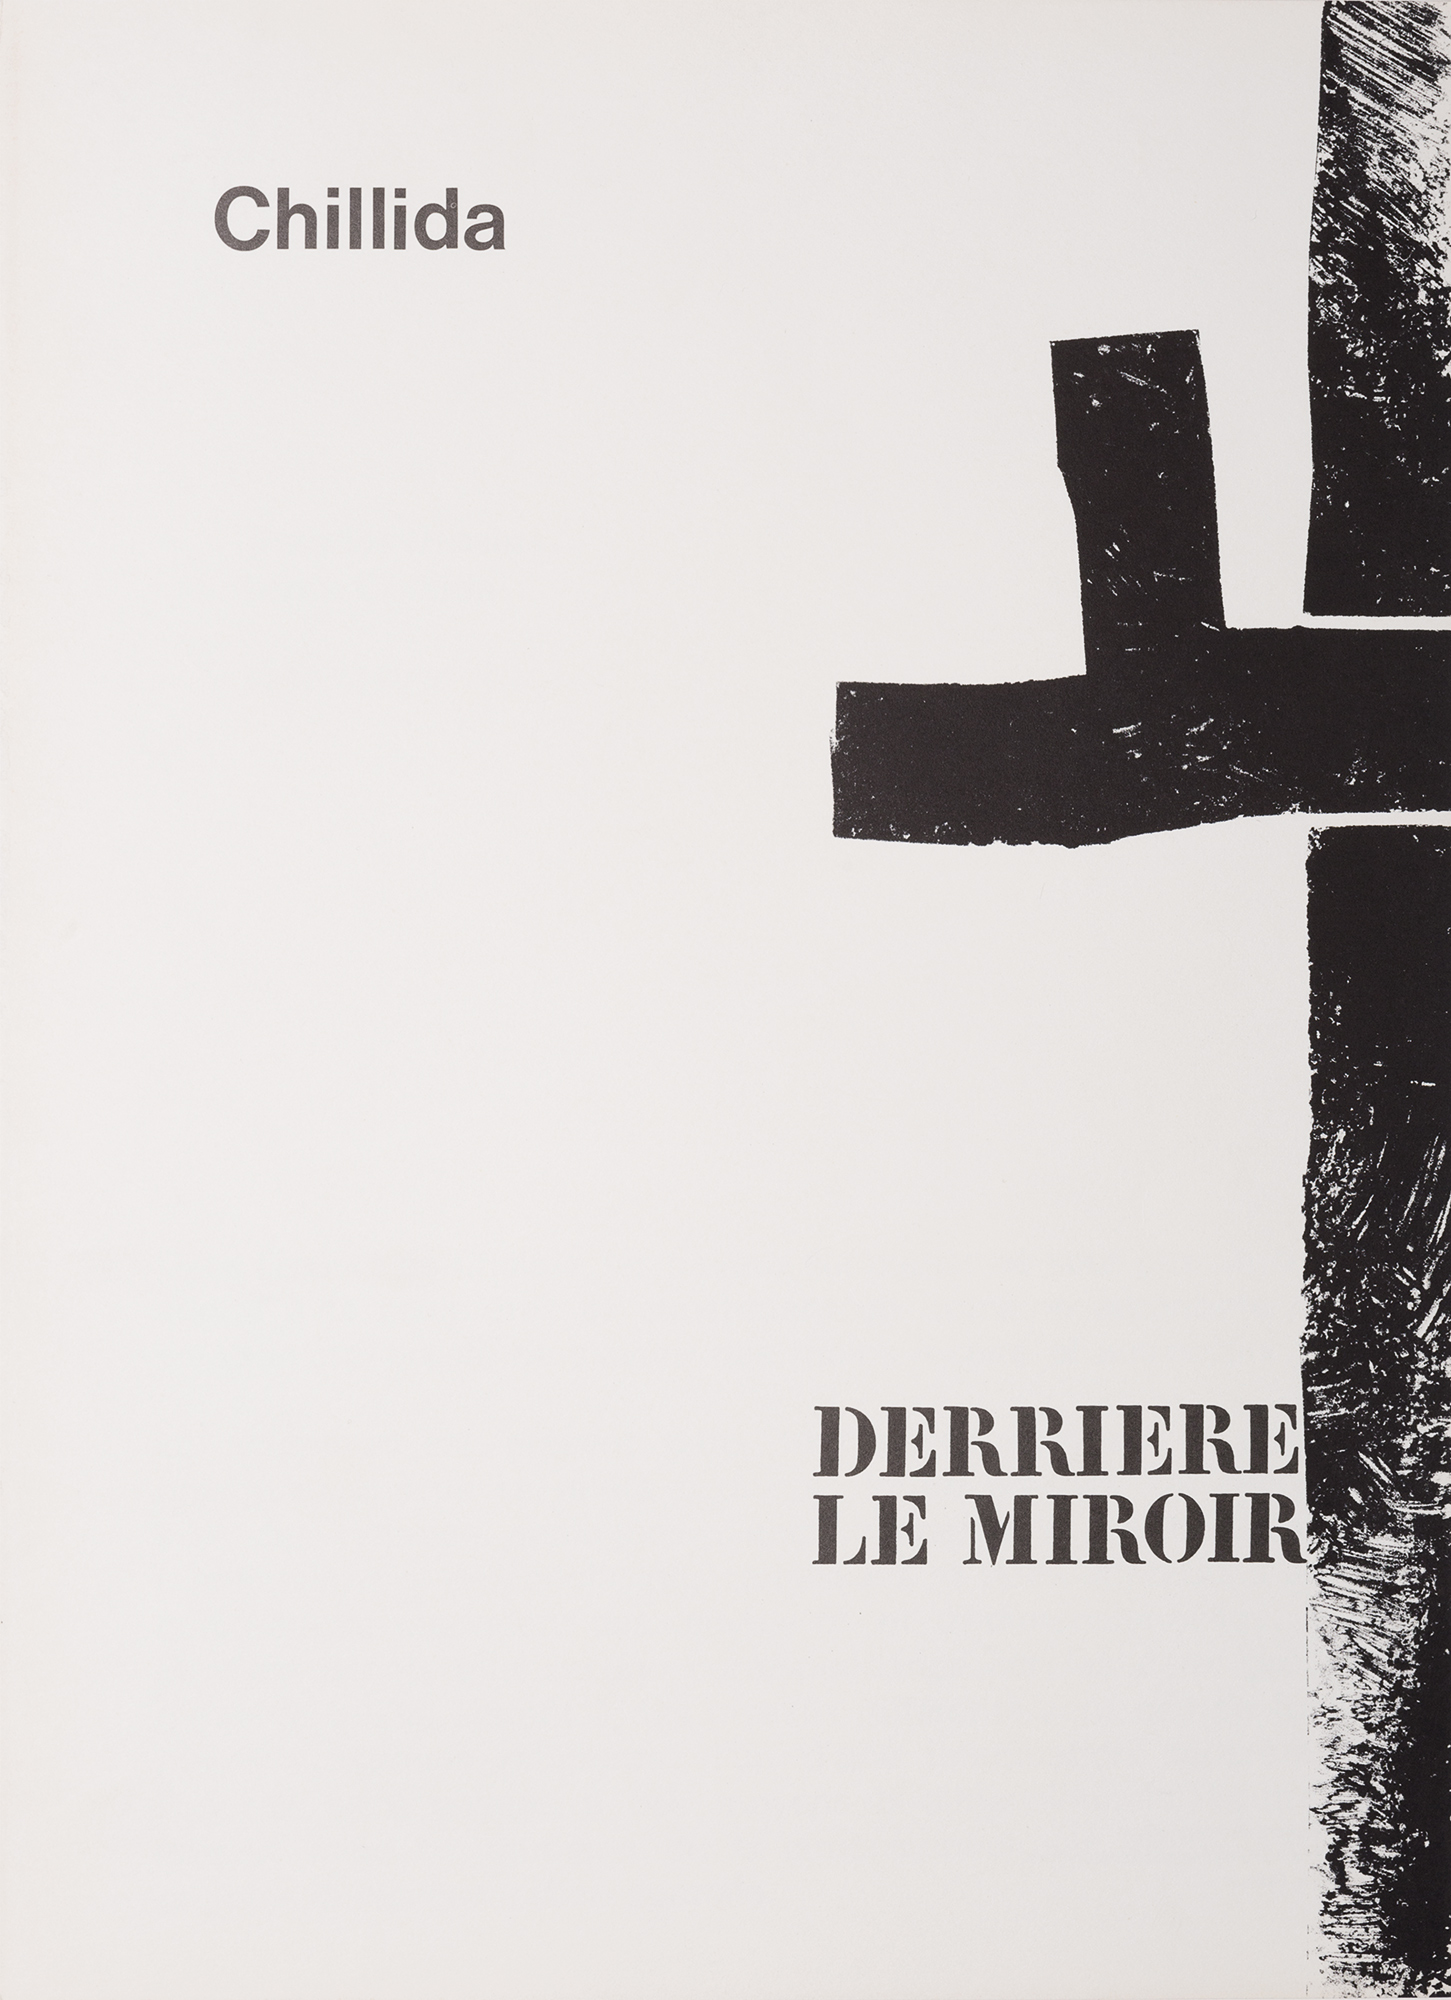 Derri re le miroir n 174 books autographs and prints for Derriere le miroir